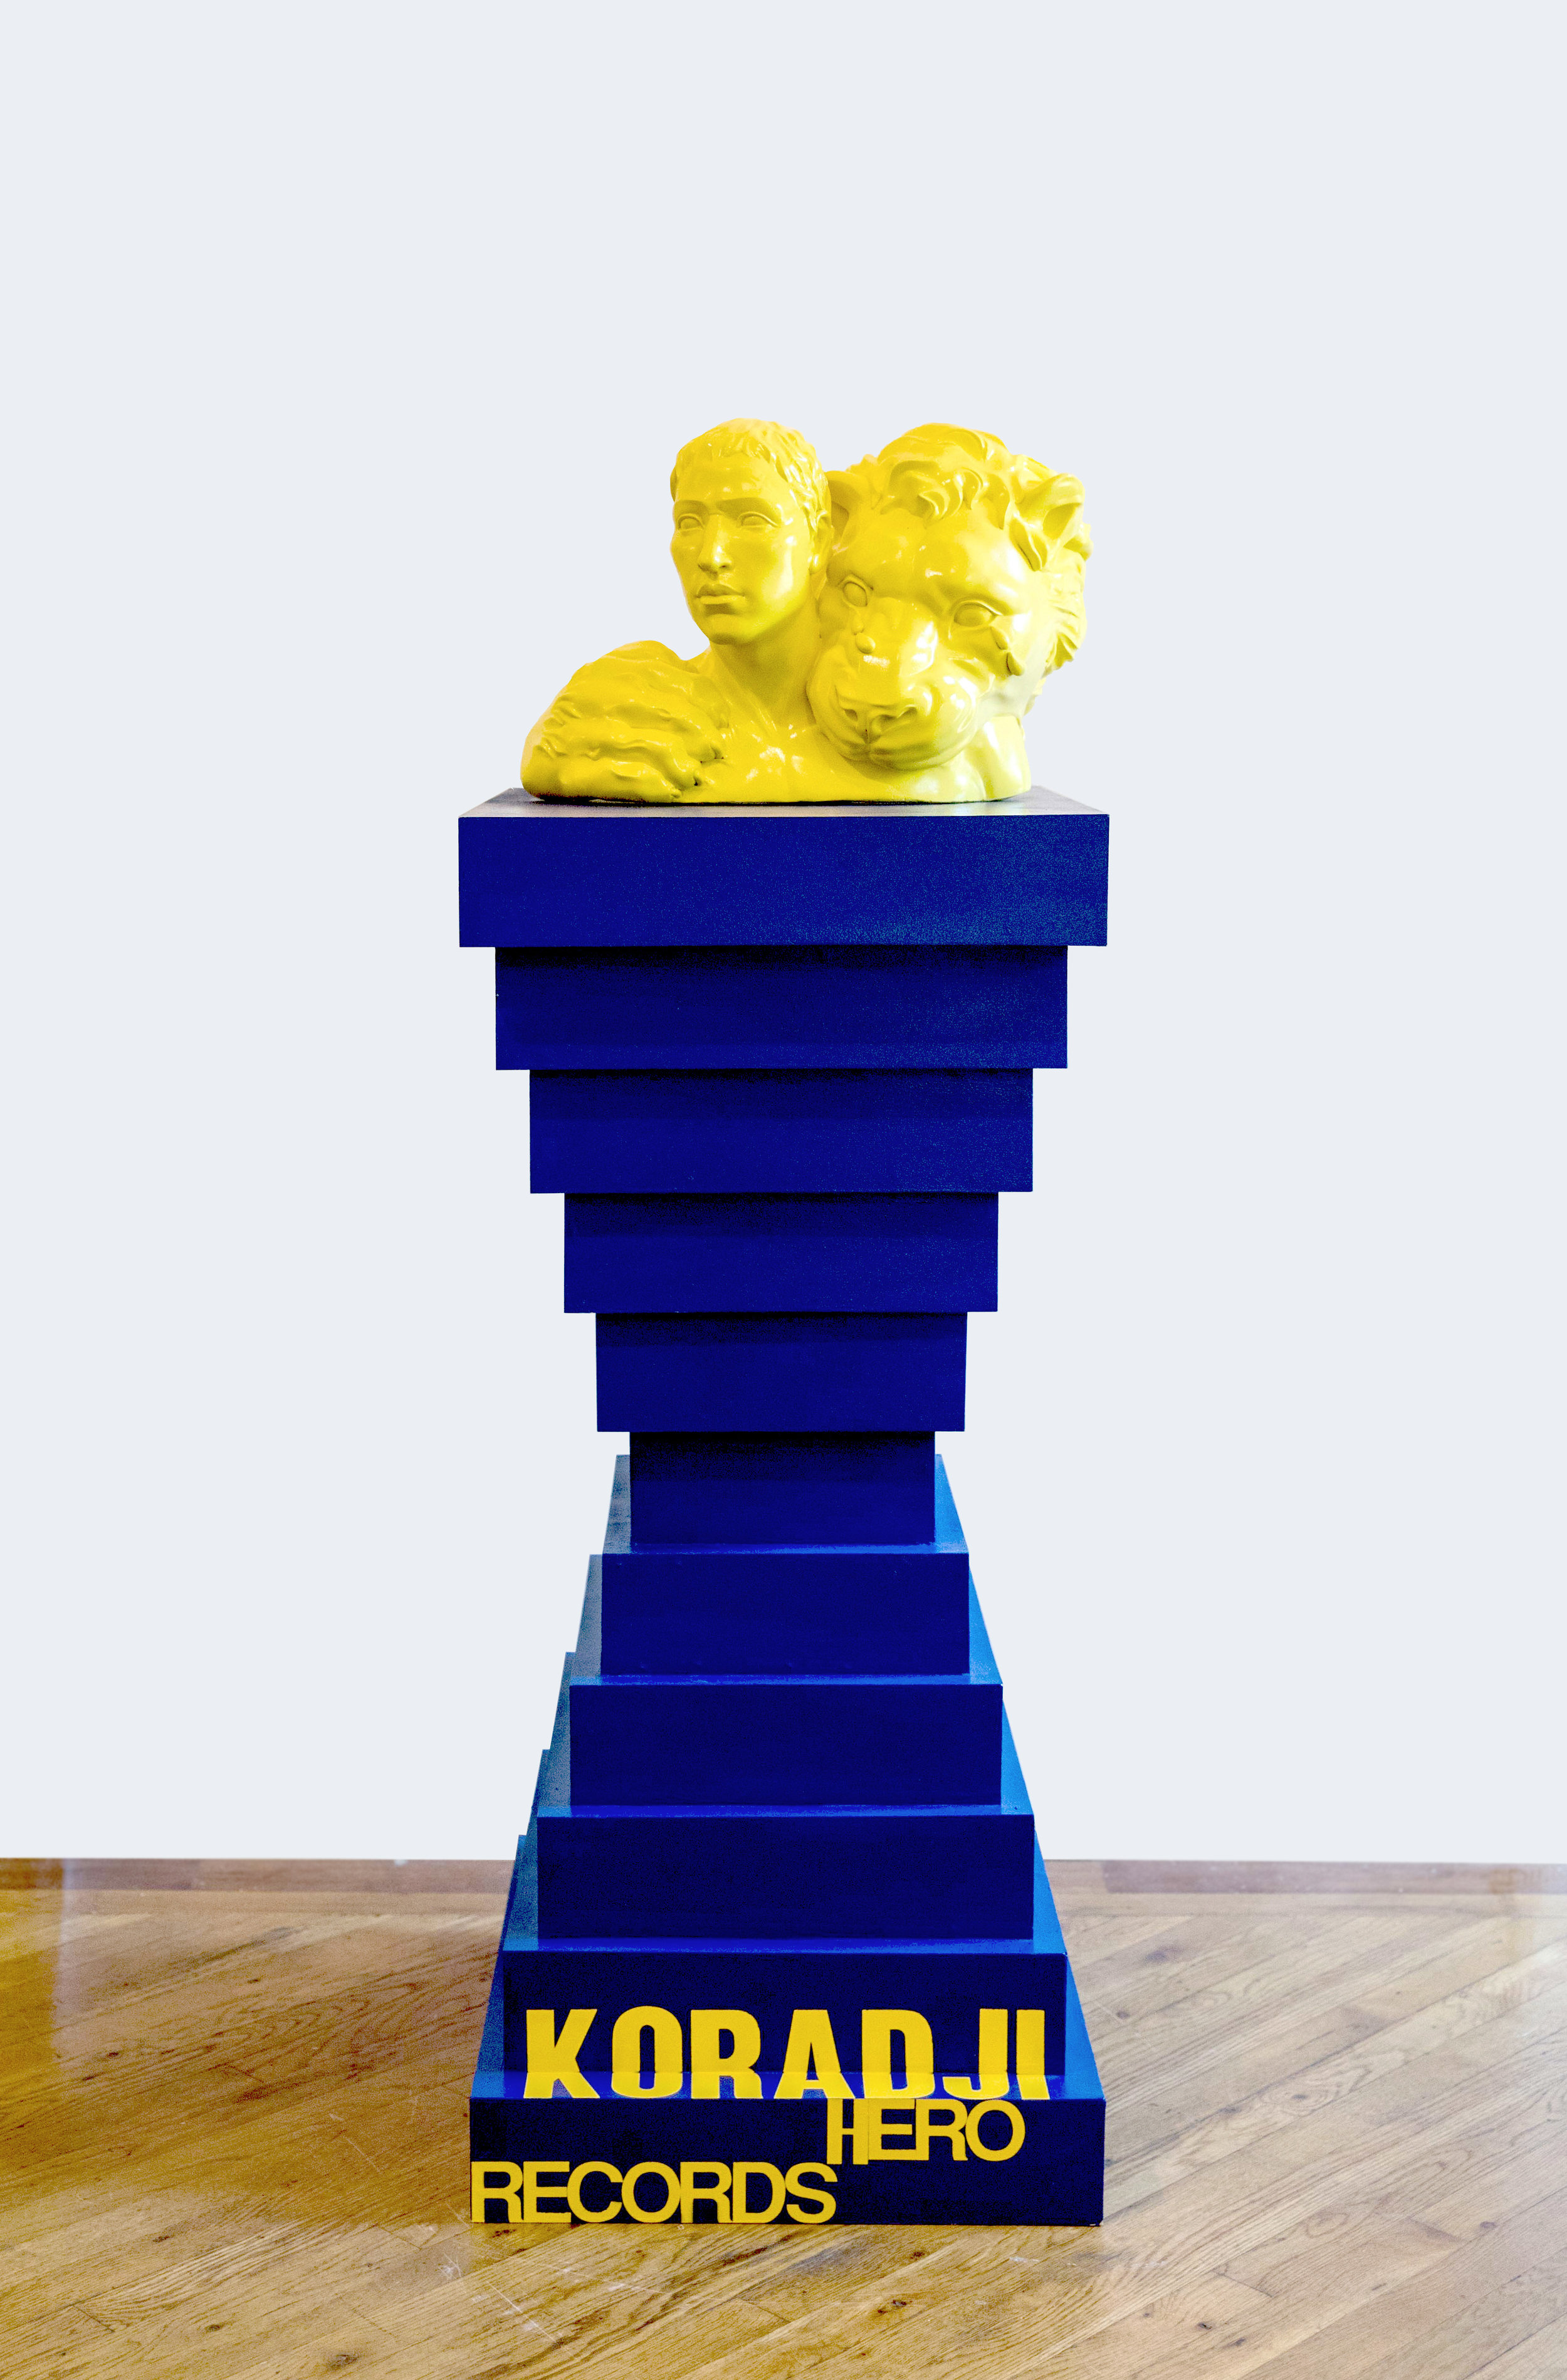 Siyuan Tan,  The Statue of Assange Was Destroyed in the Building , 2019. Apoxie, wood, 20 x 14 x 13 inch; Base: 45 x 24 x 20 inch ©Siyuan Tan, courtesy Fou Gallery